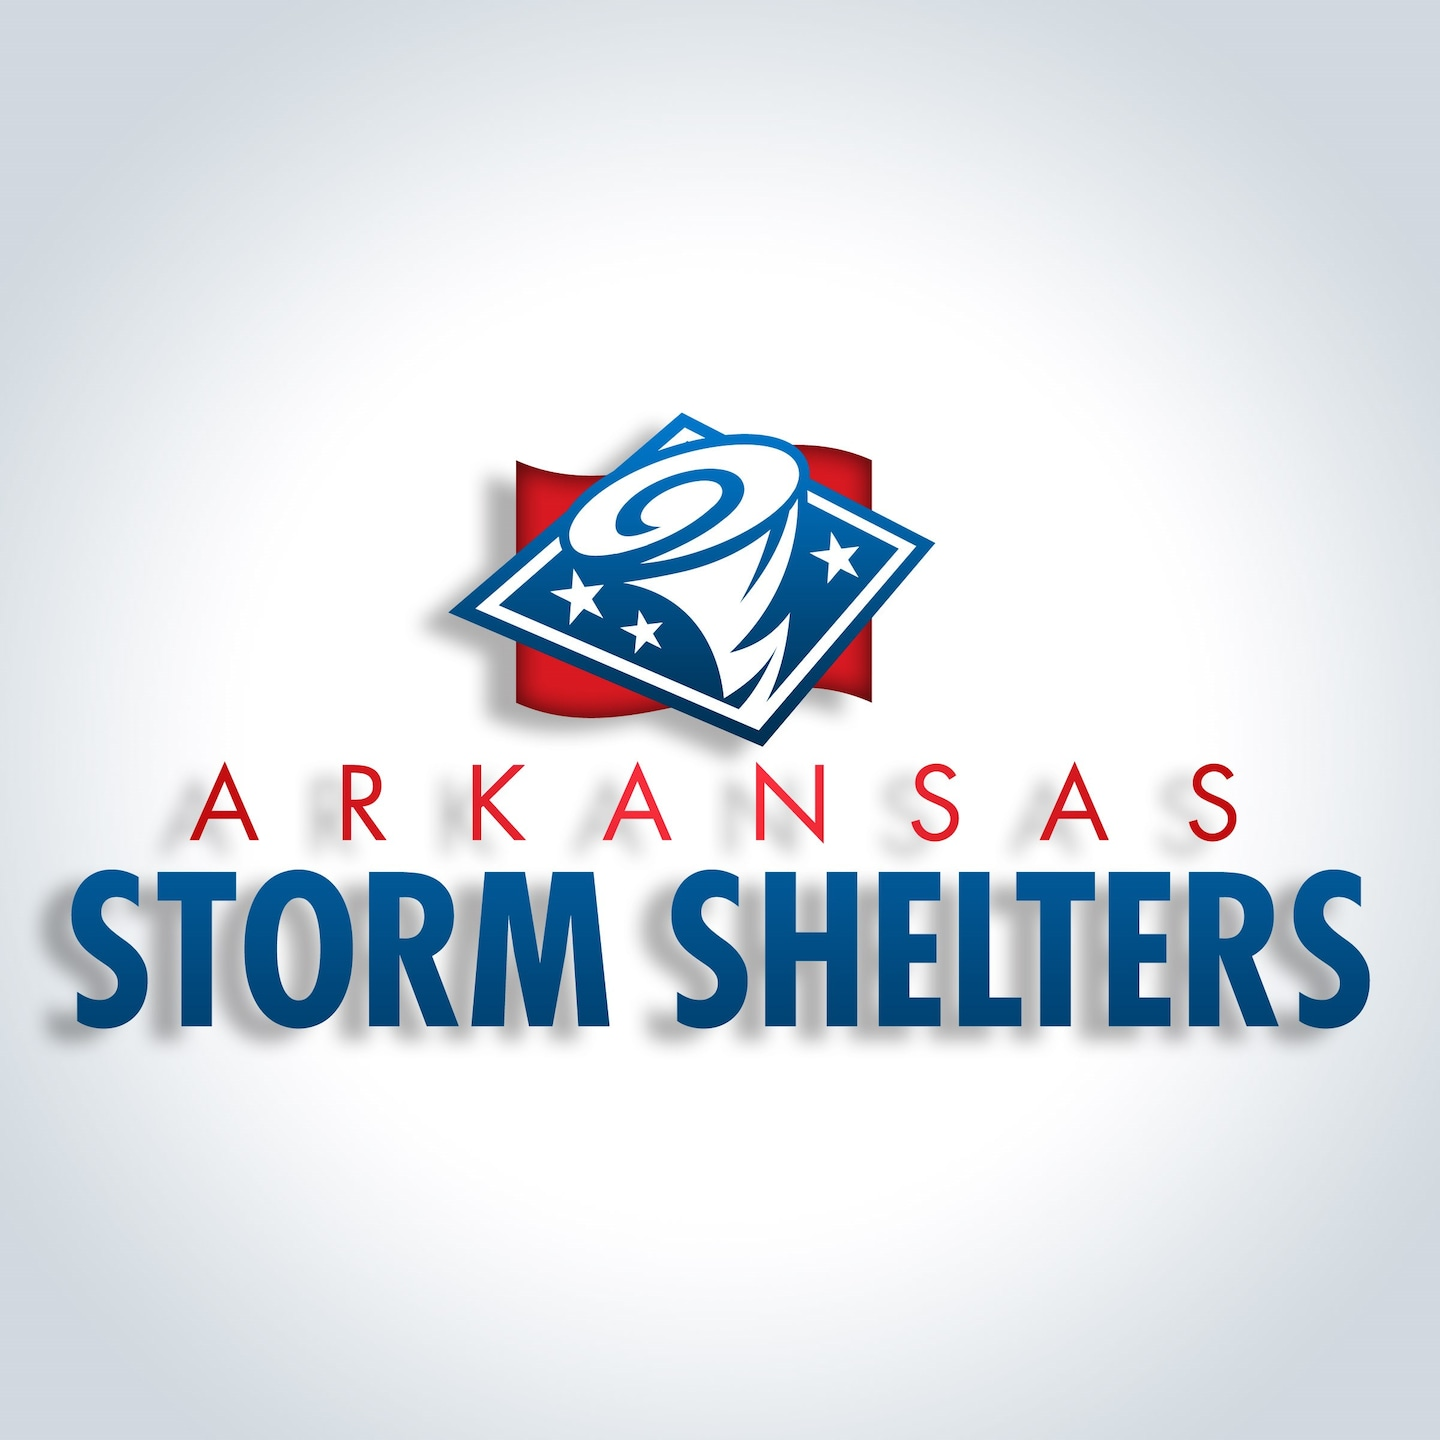 Arkansas Storm Shelter Inc